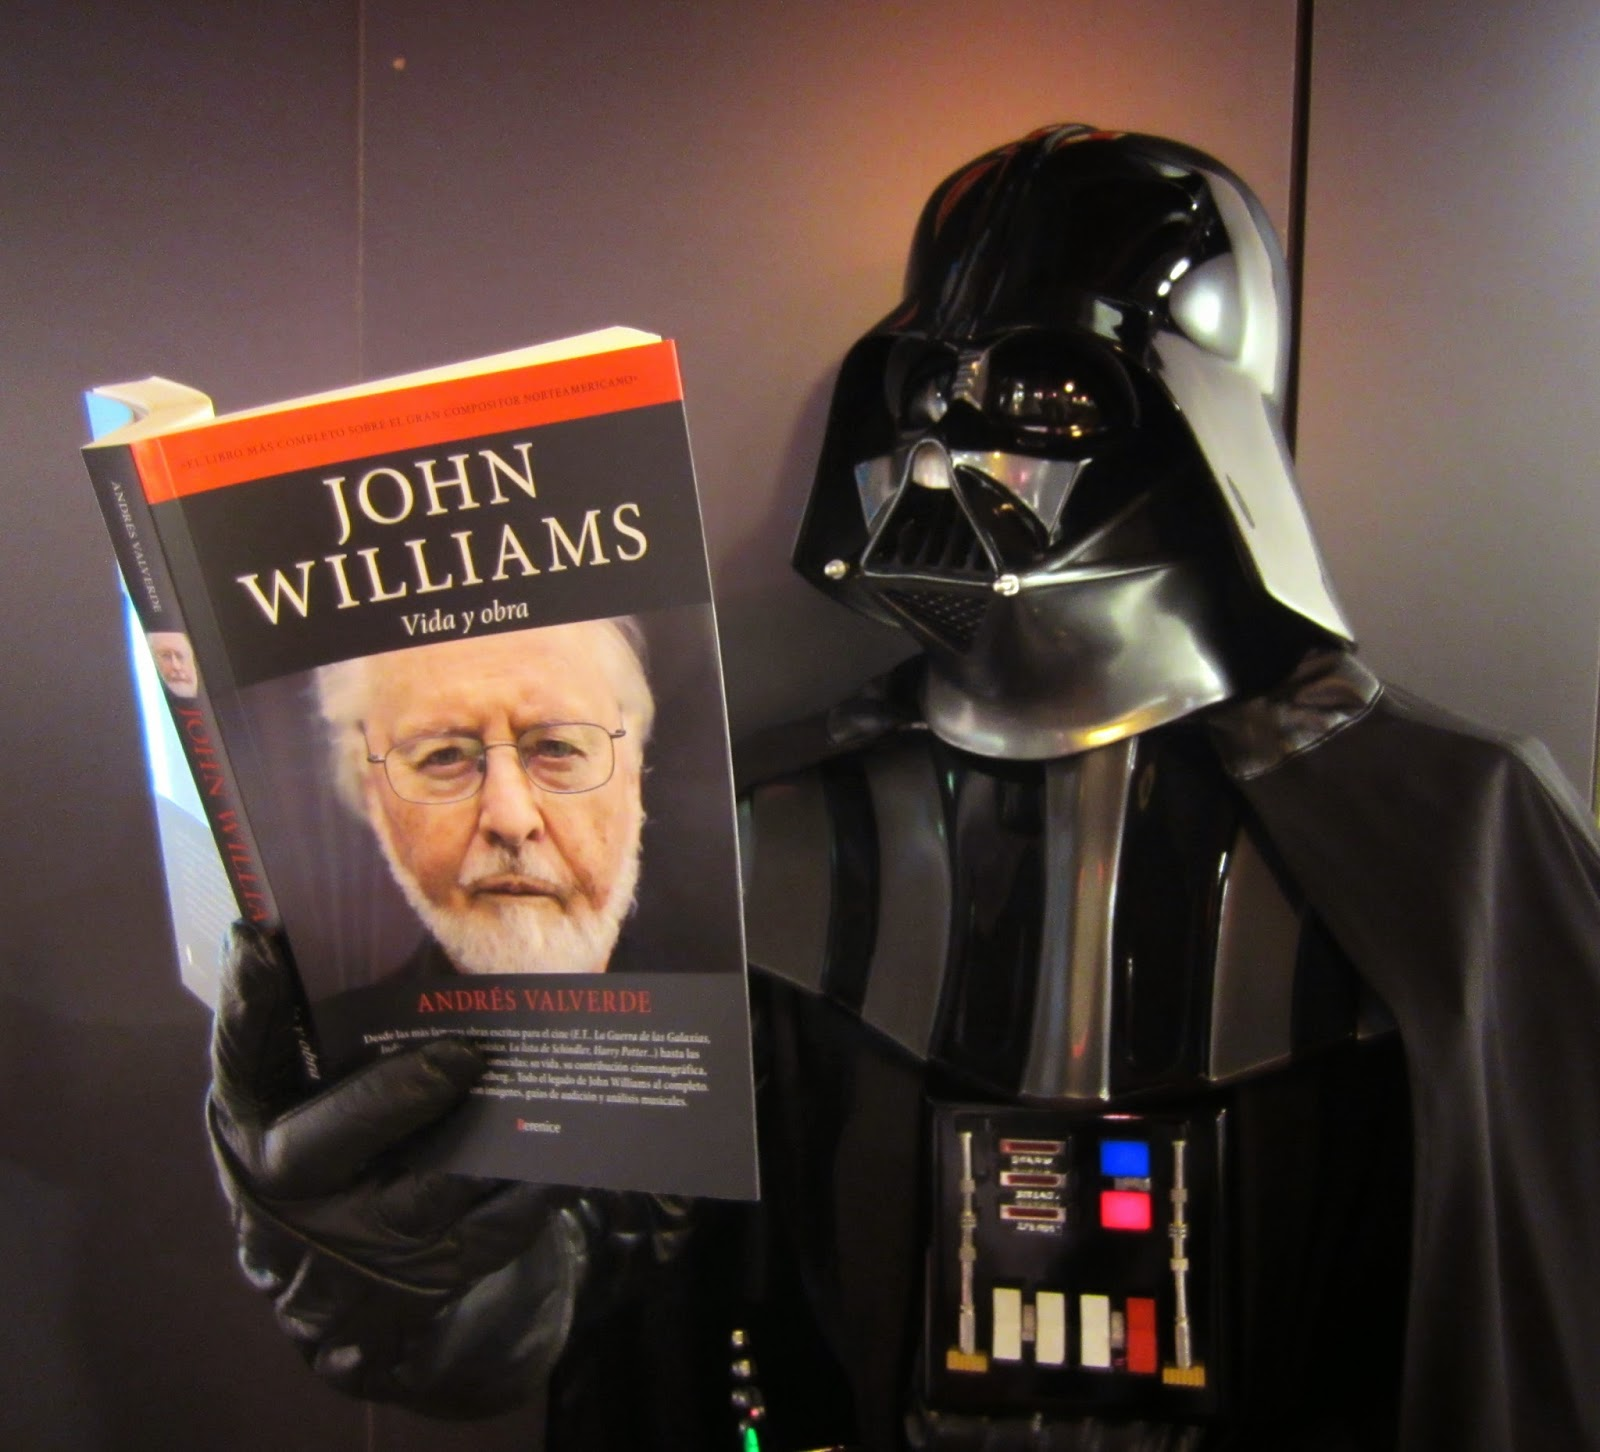 John Williams Composer John williams: vida y obra.